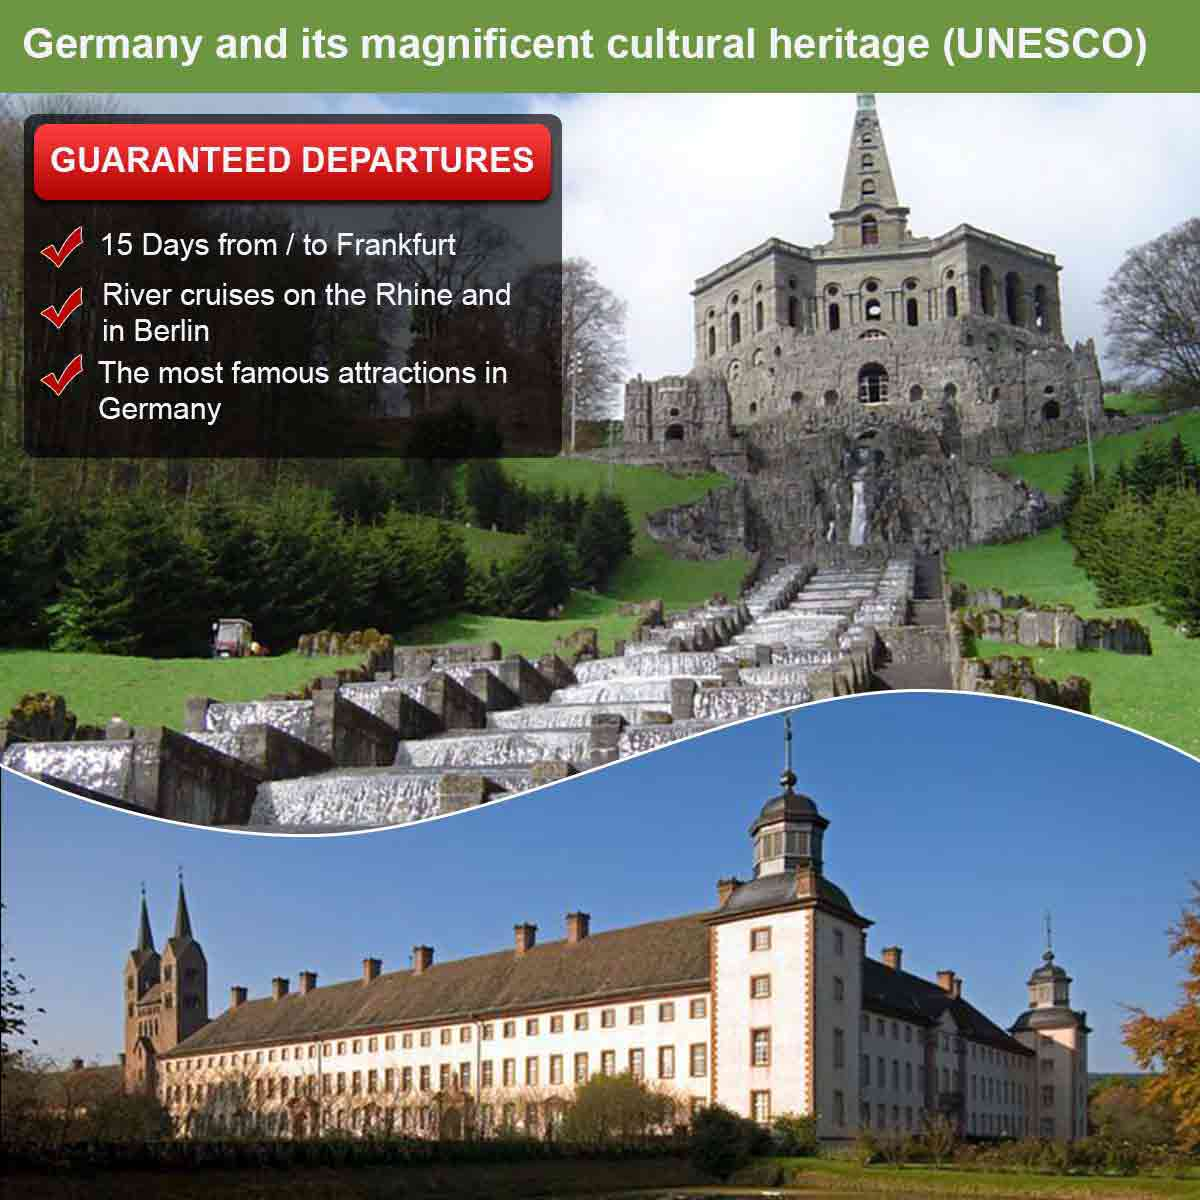 Germany and its magnificent cultural heritage (UNESCO)